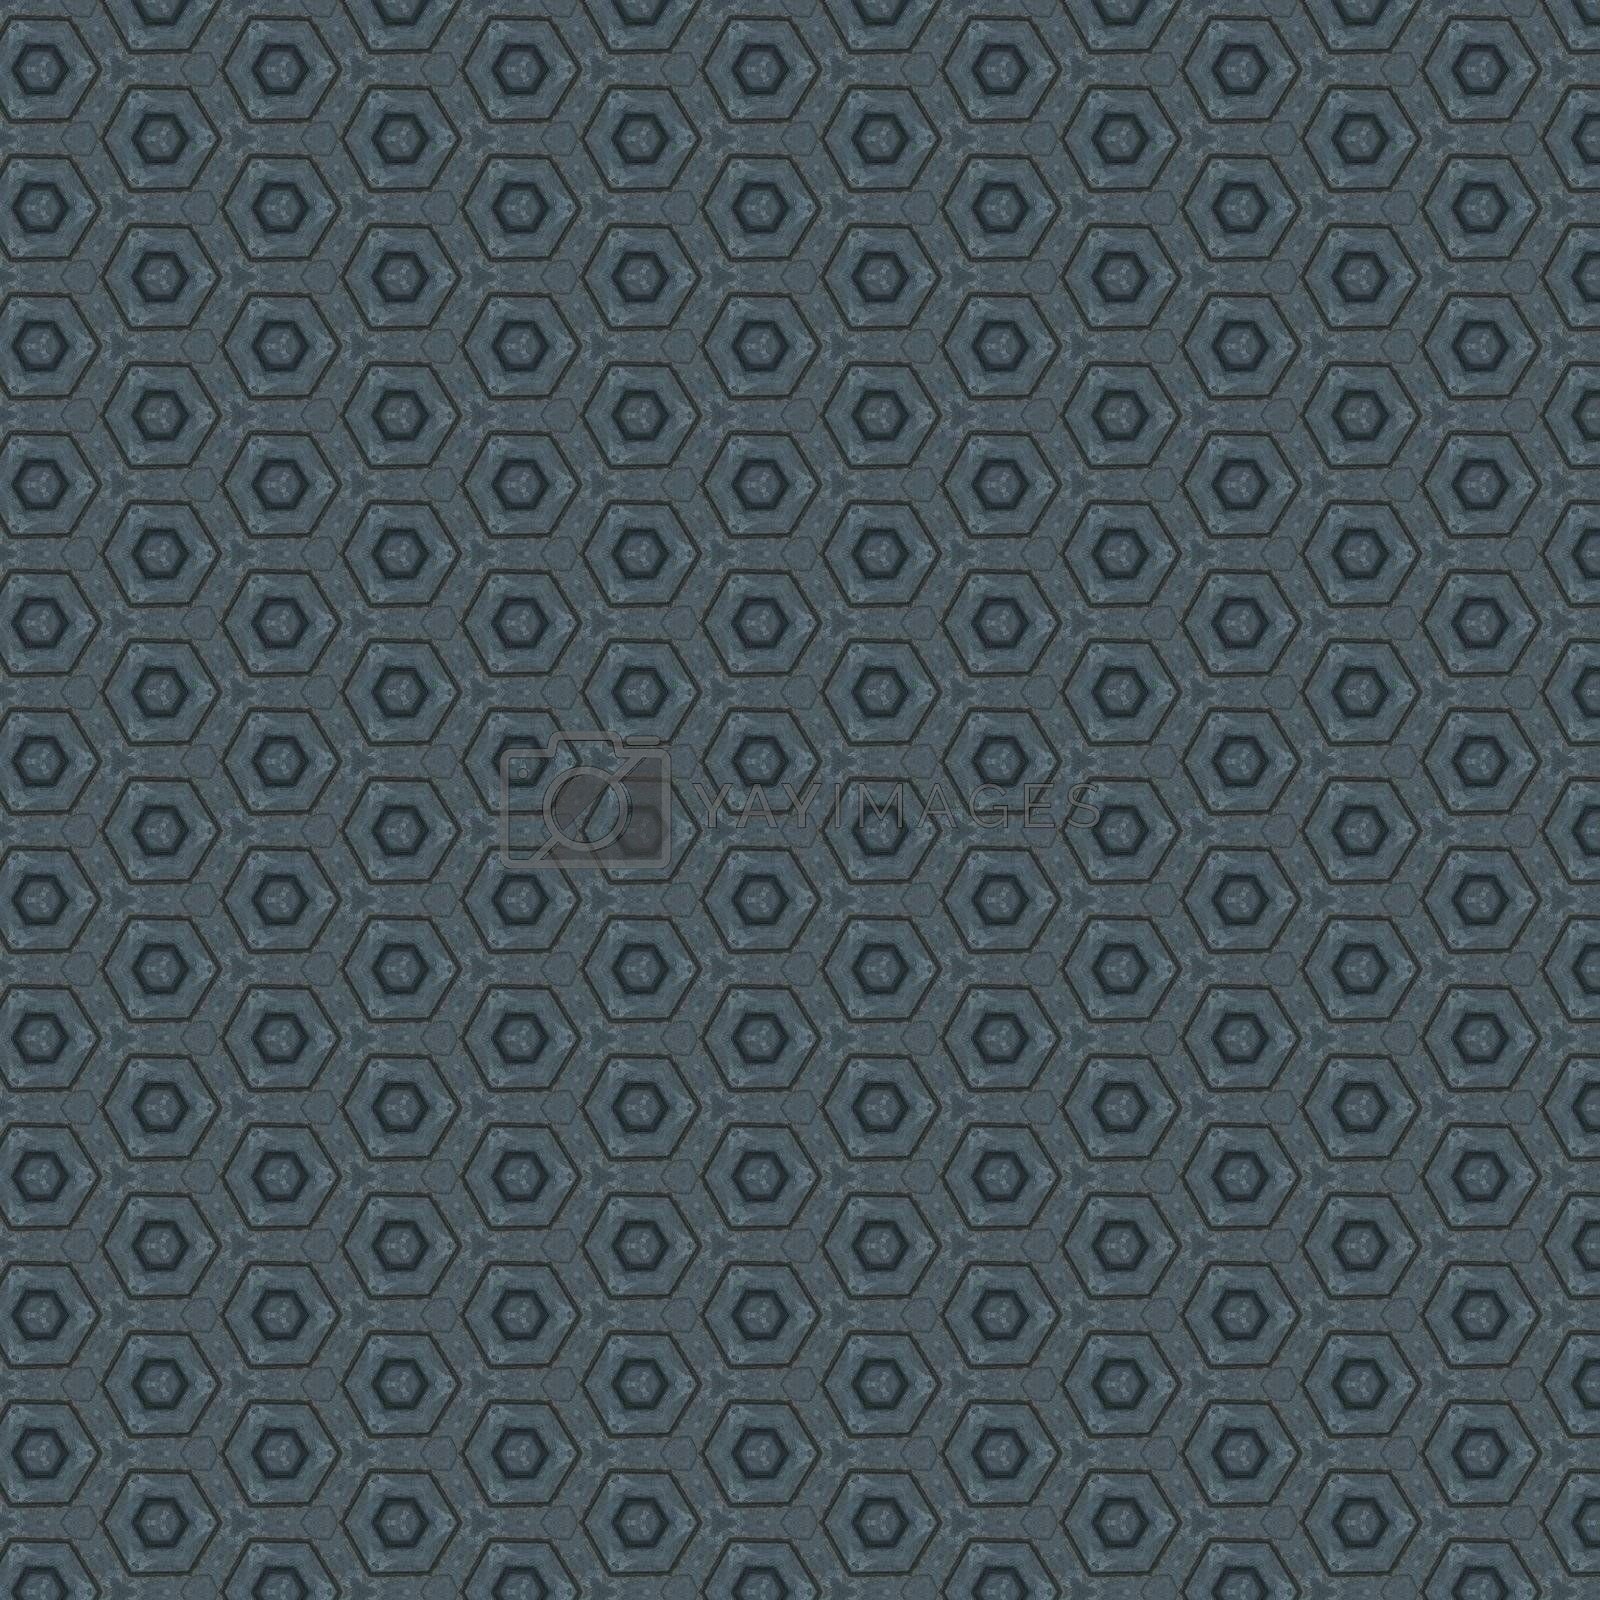 the beautiful patterned background for your design